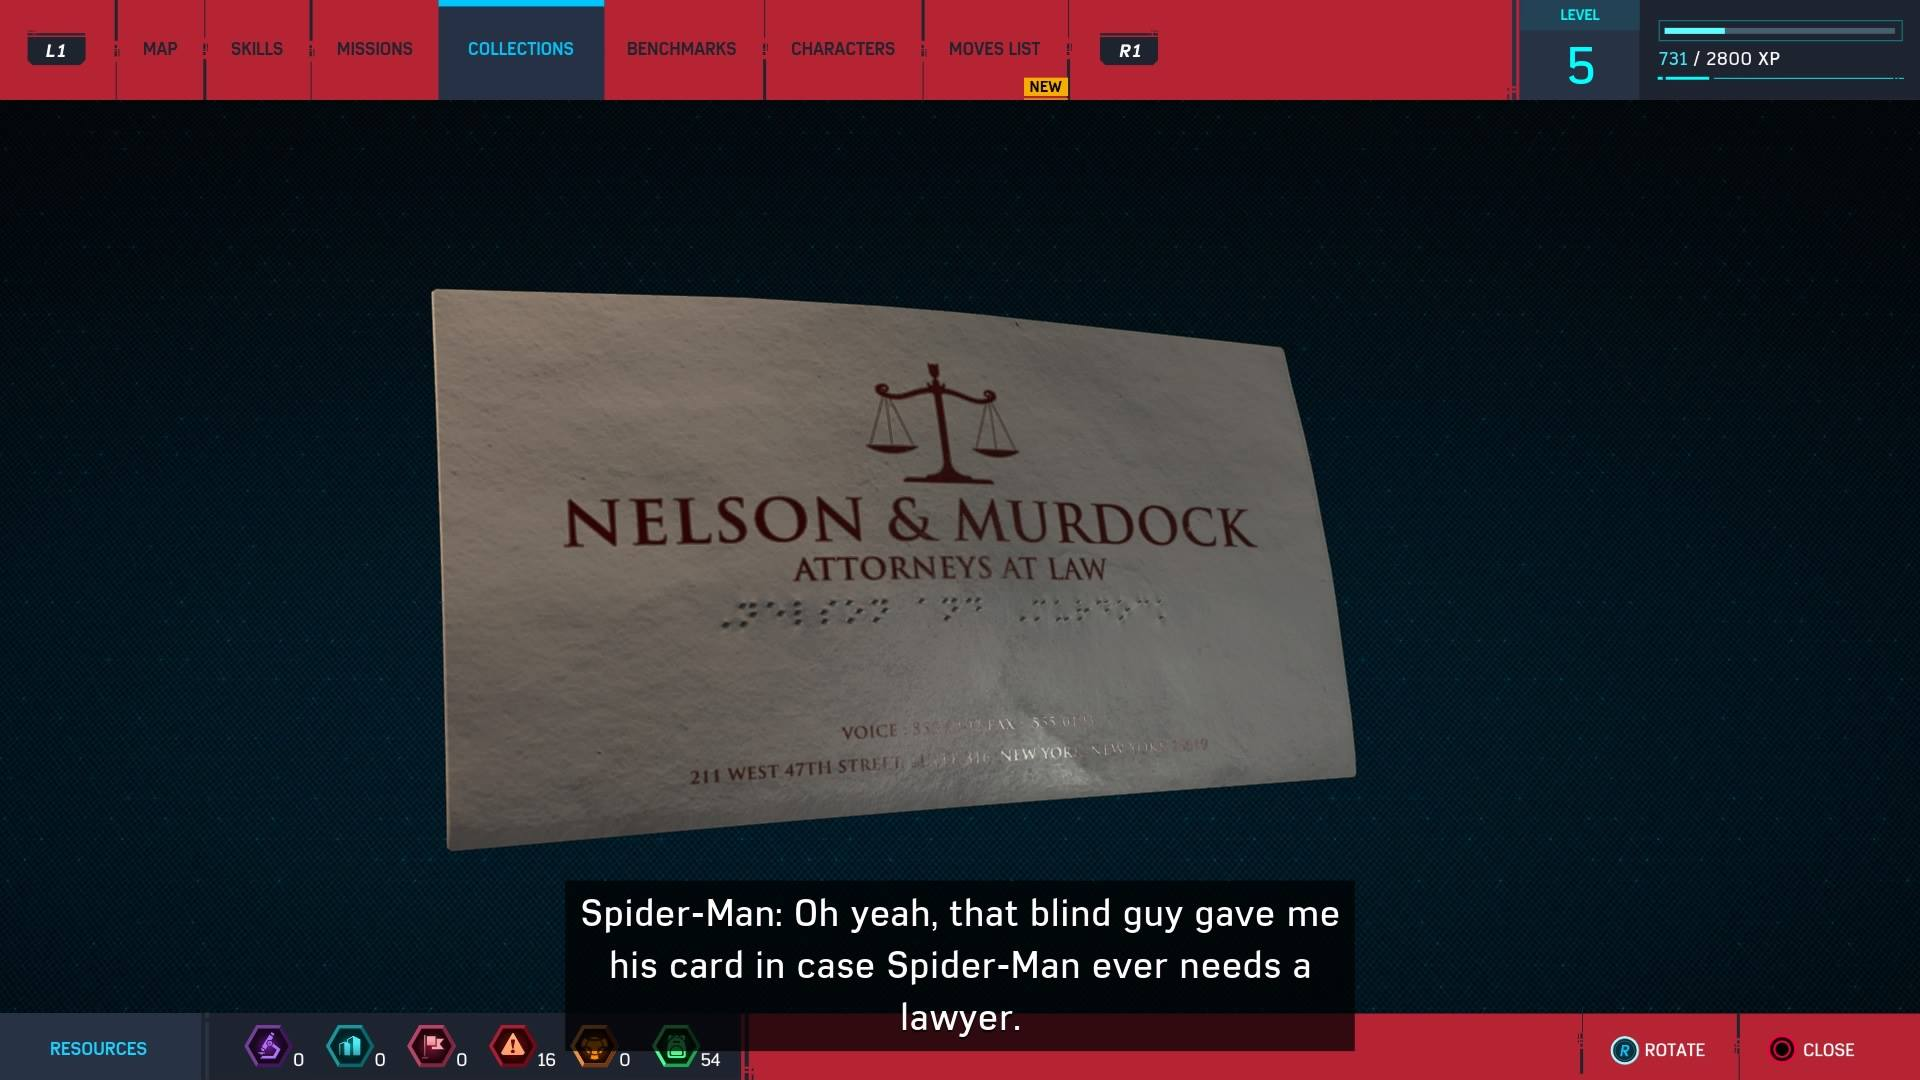 3. Lawyer's Business Card